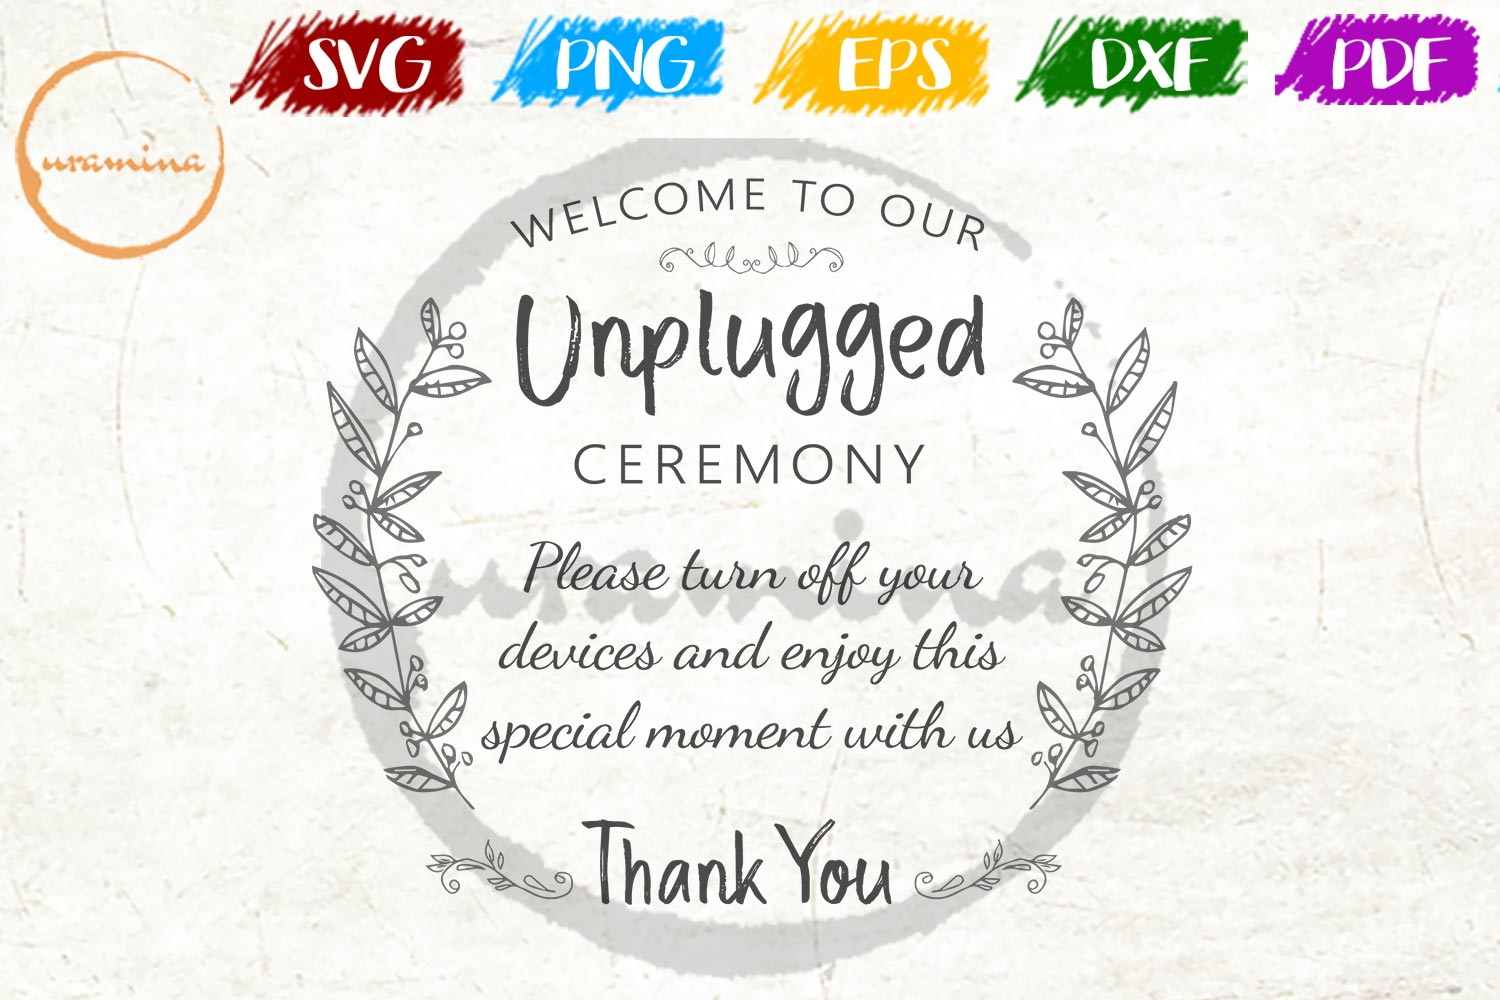 Download Free Welcome To Our Unplugged Ceremony Graphic By Uramina Creative for Cricut Explore, Silhouette and other cutting machines.